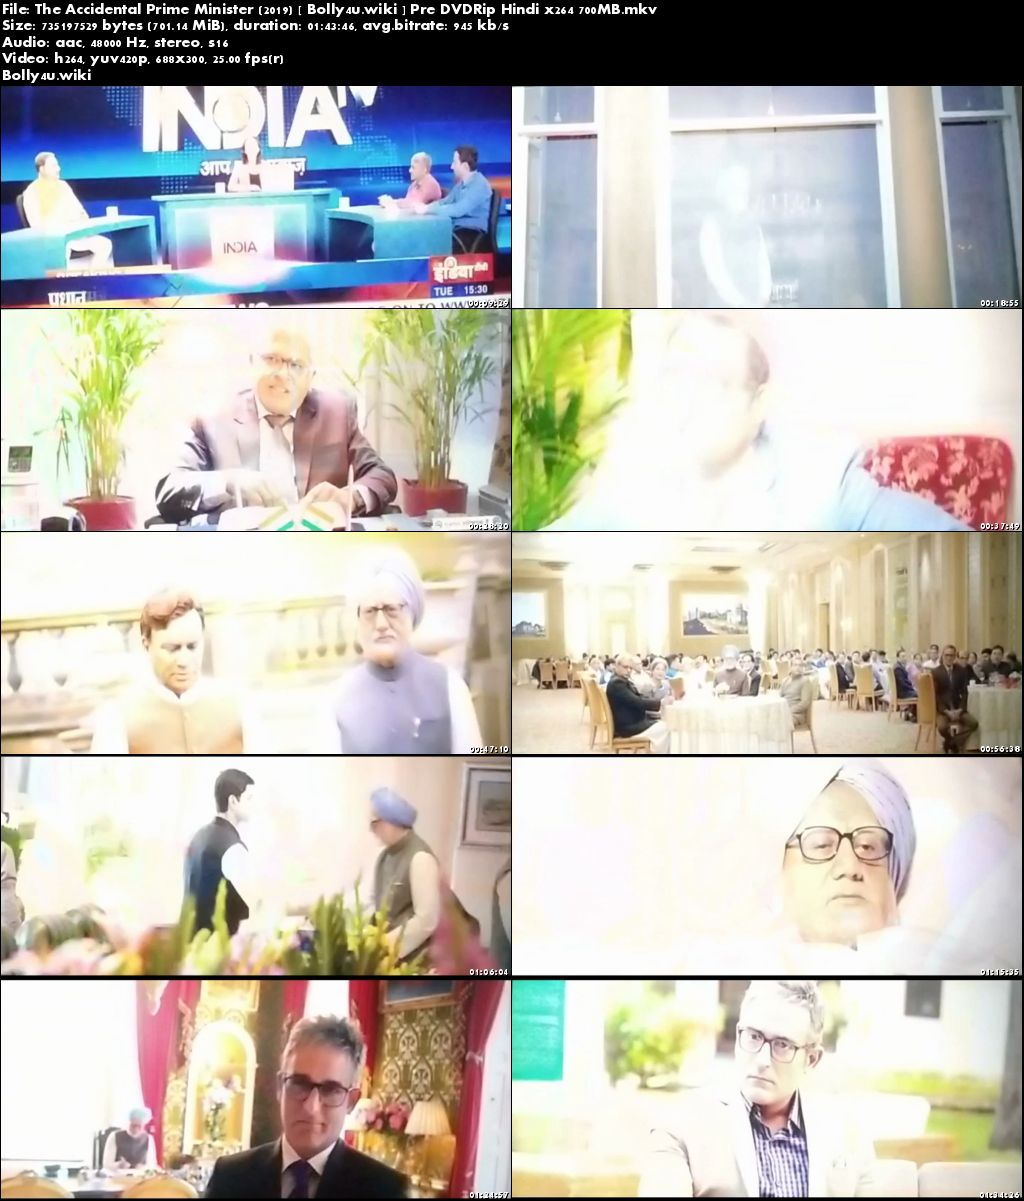 The Accidental Prime Minister 2019 Pre DVDRip 300MB Hindi 480p Download